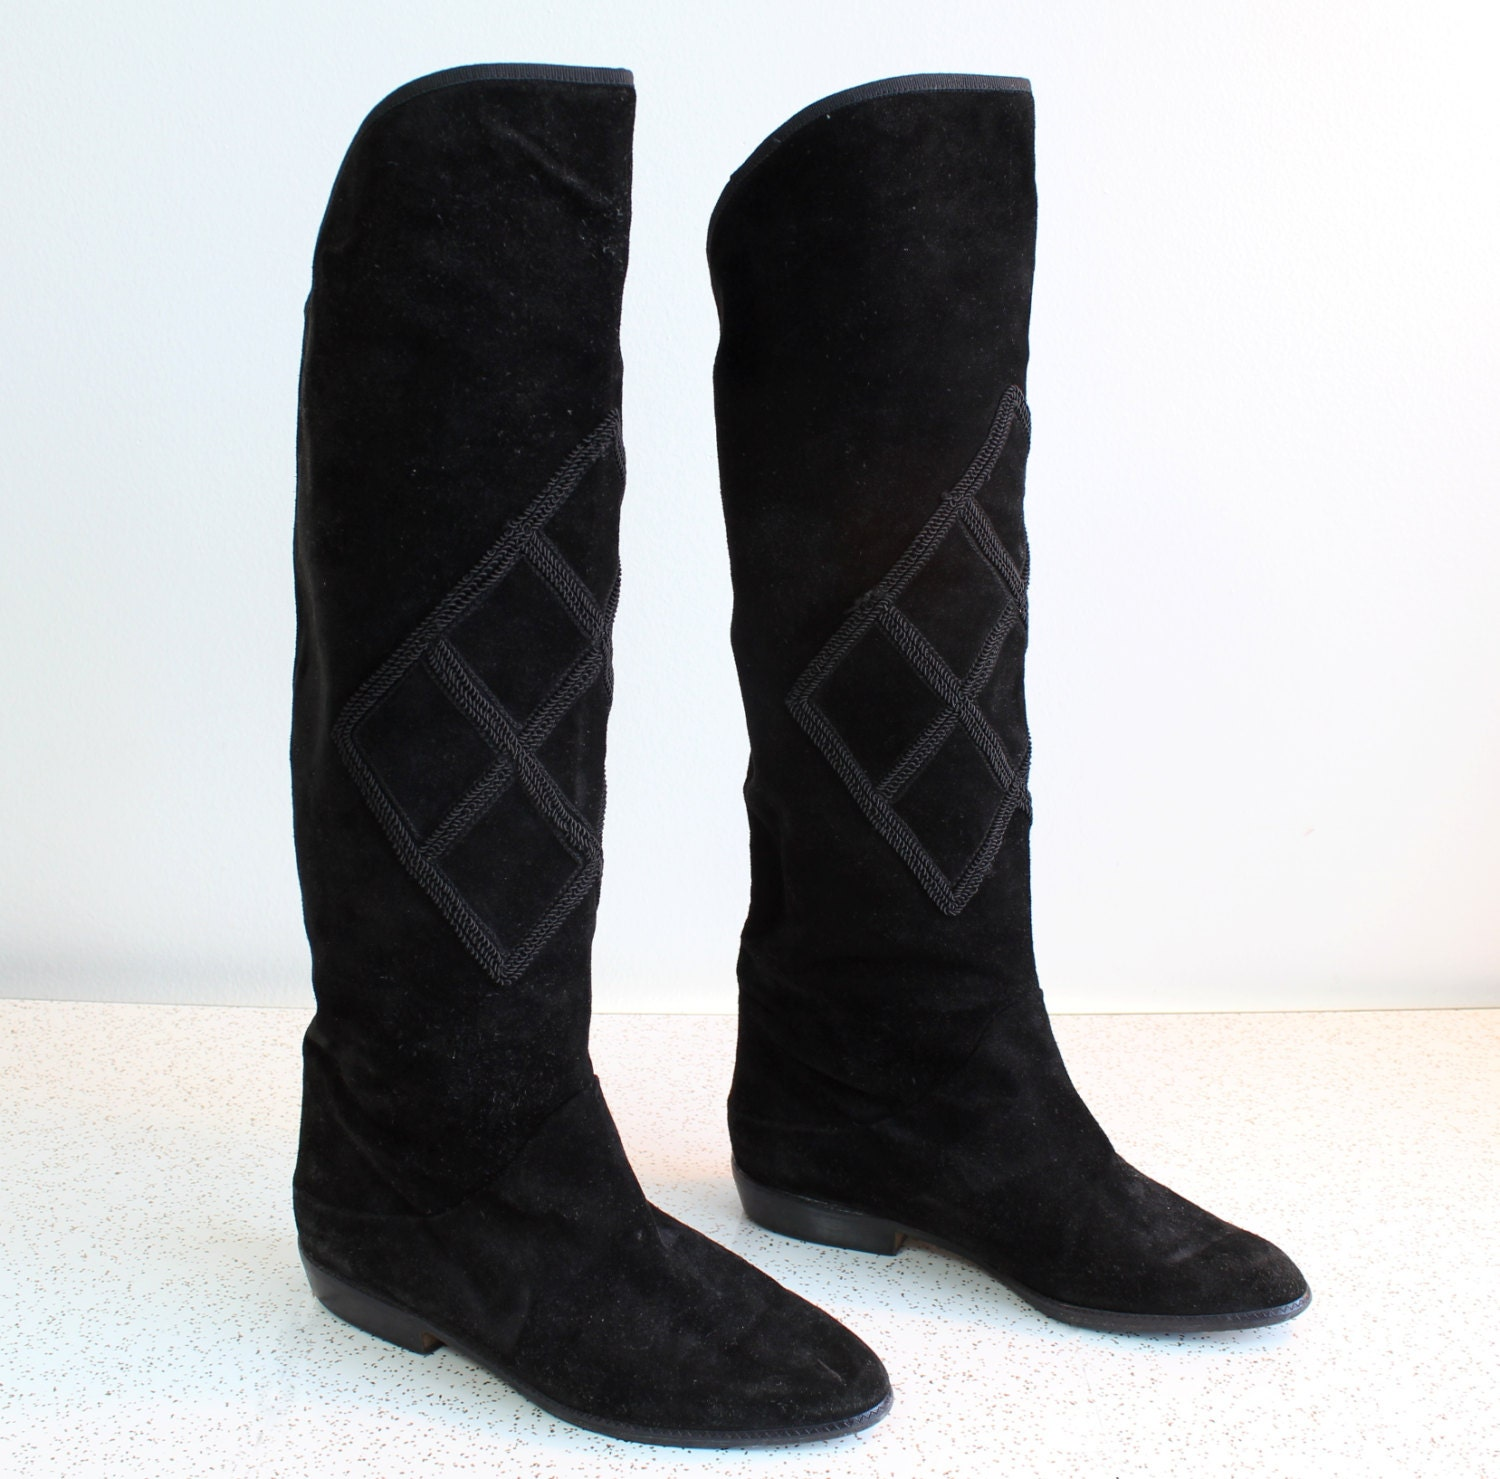 items similar to sz 5 suede knee high slim boots on etsy